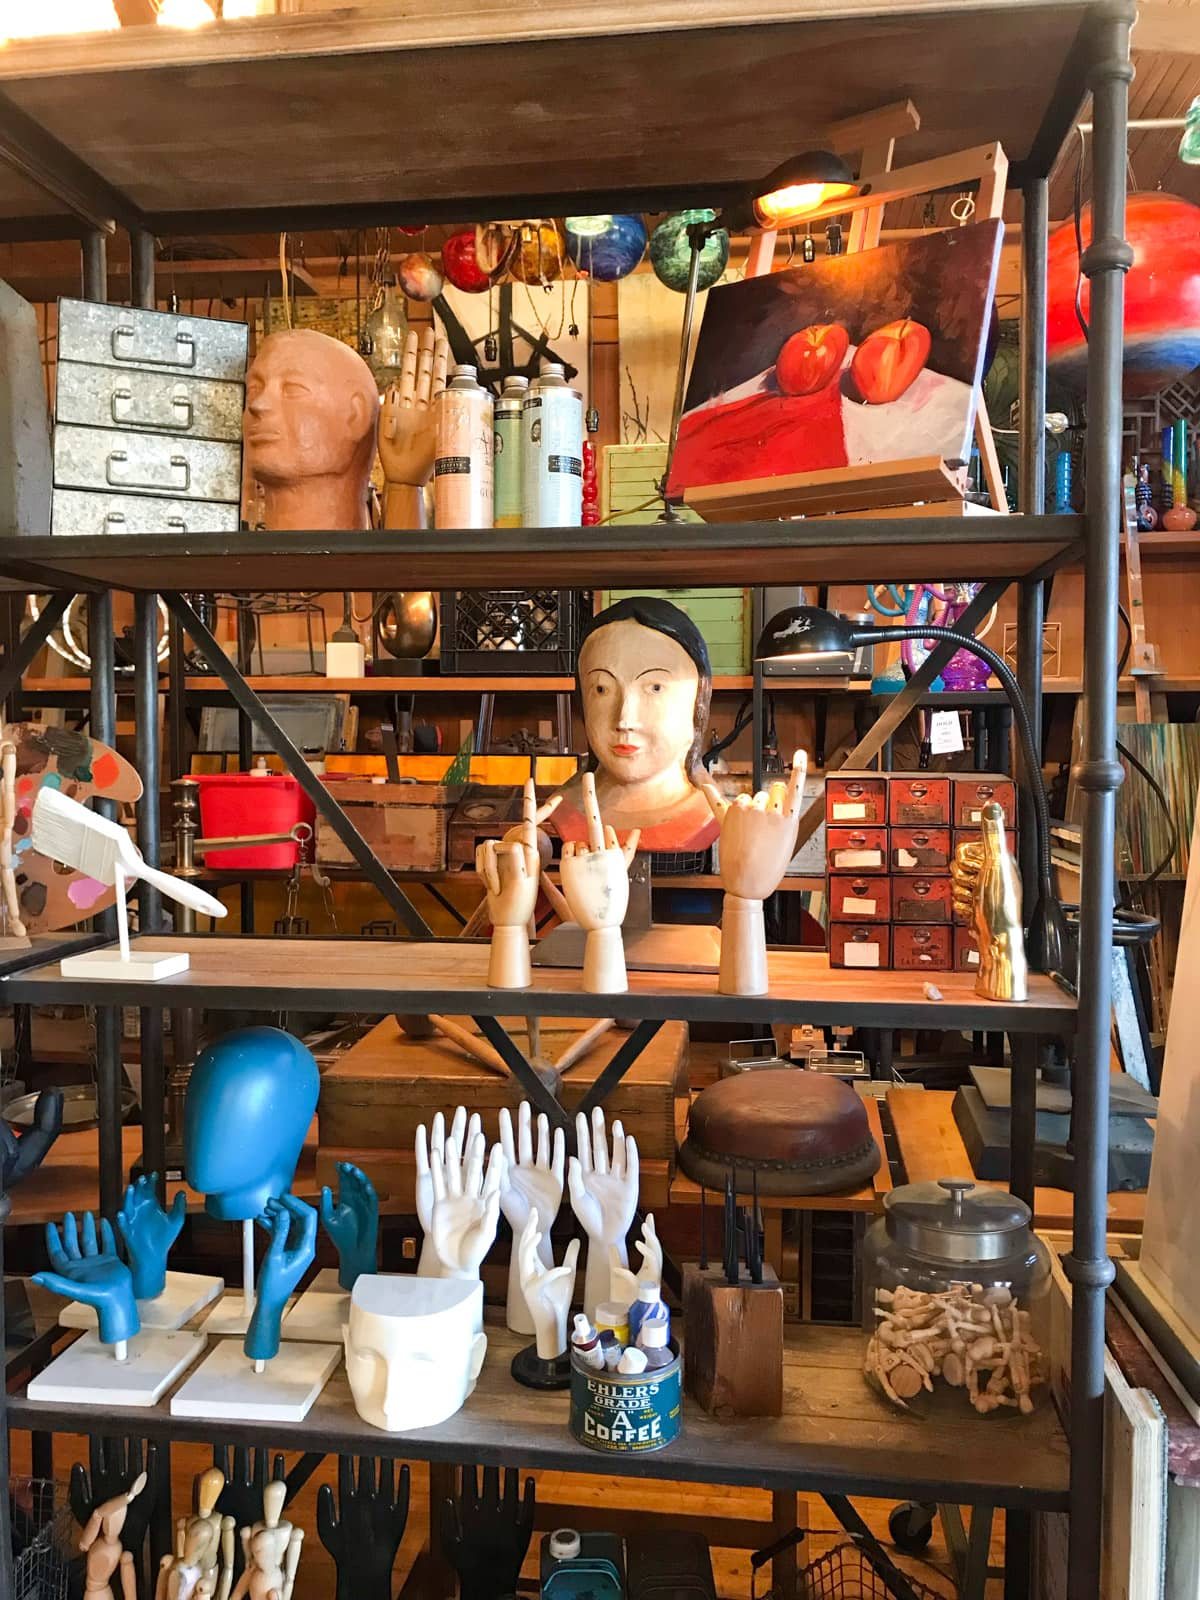 A shelf of many props, most of them being models of hands and heads. Shelves in the background are full as well.